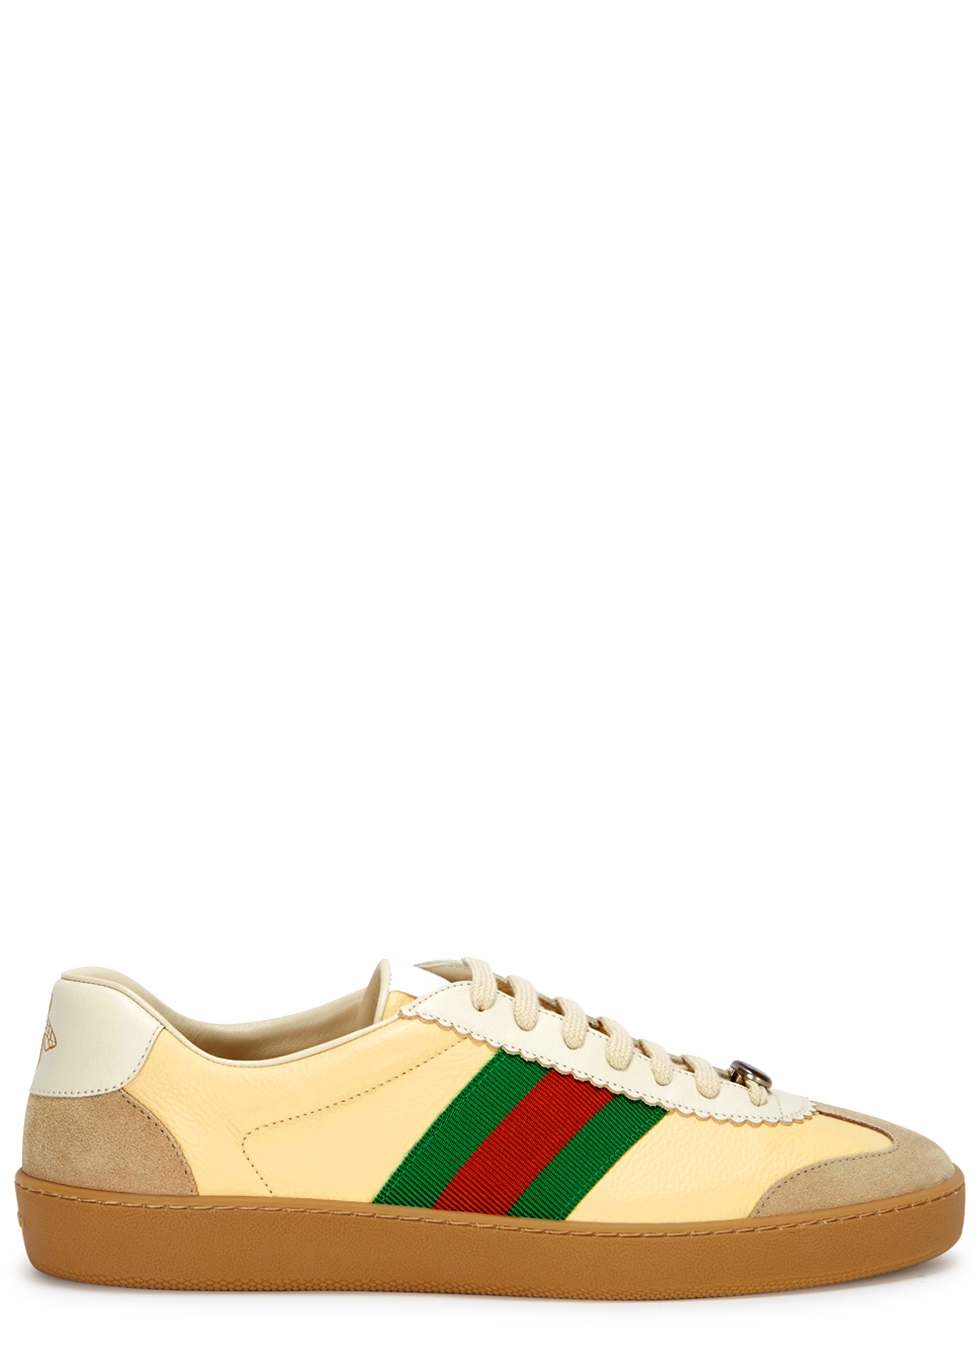 GUCCI YELLOW LEATHER TRAINERS